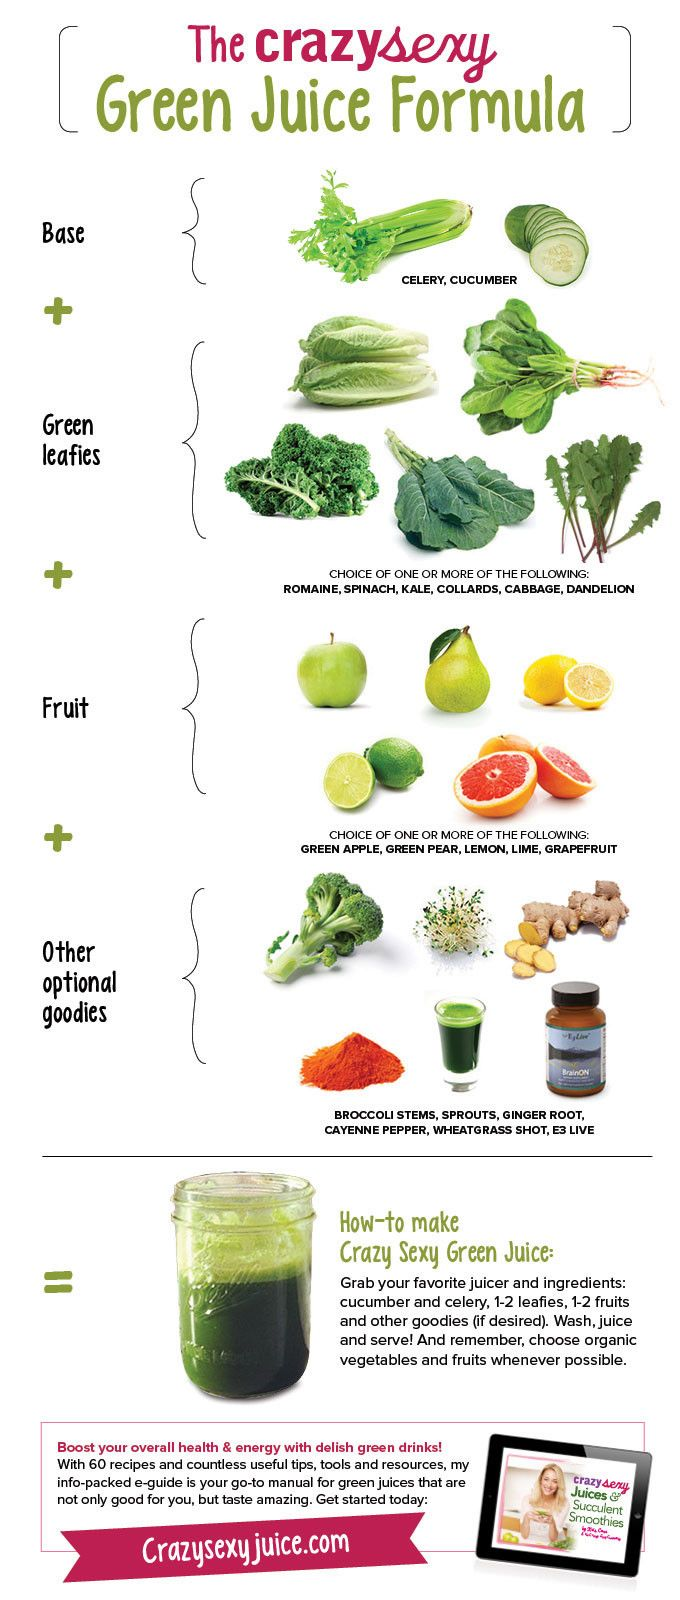 How To Make Green Juice!